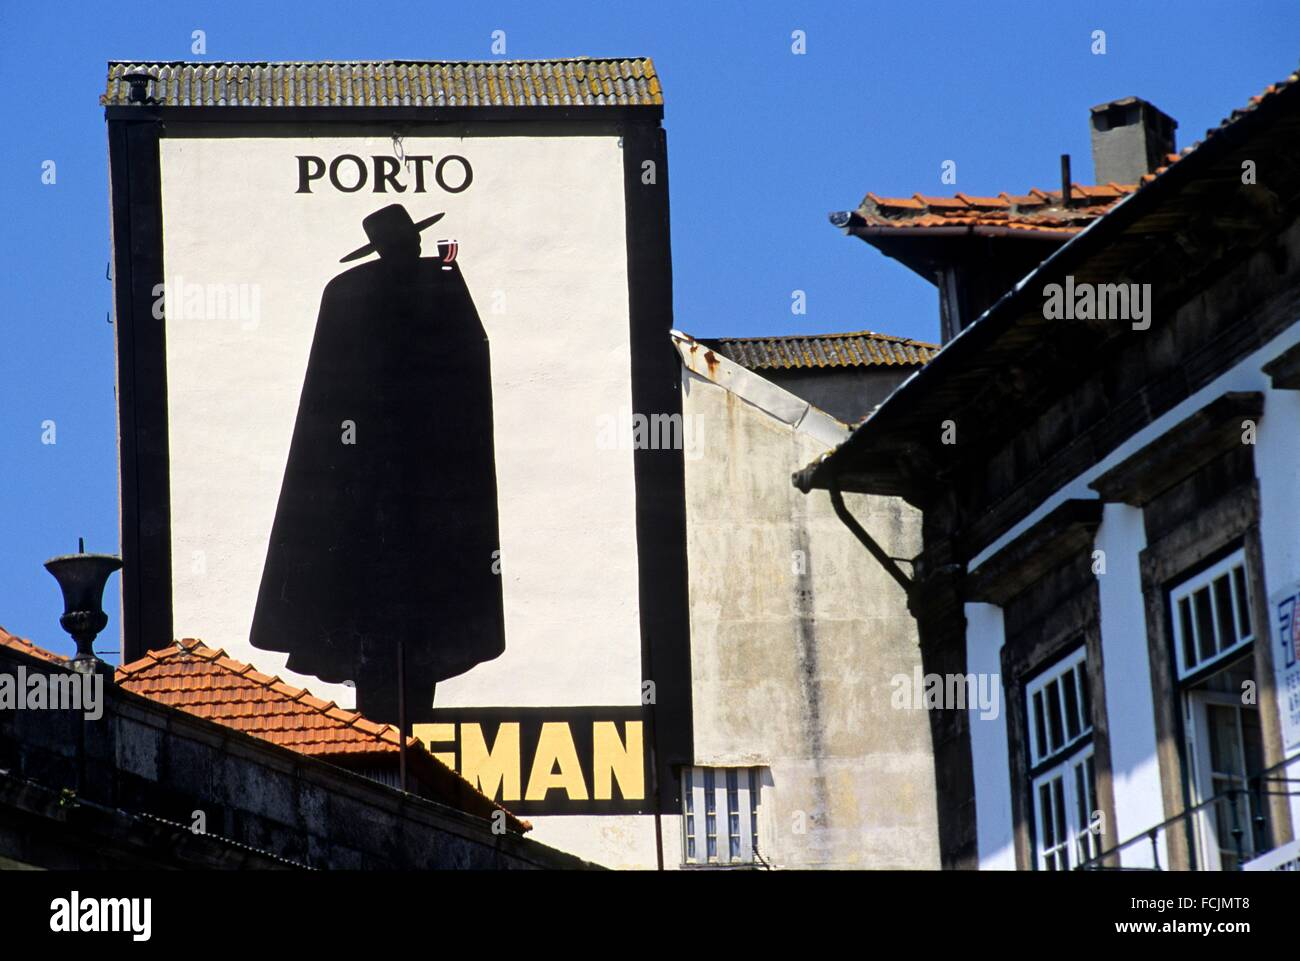 old hand-painted advertising signage for Sandeman Wine Porto, Porto, Portugal, Southern Europe. - Stock Image